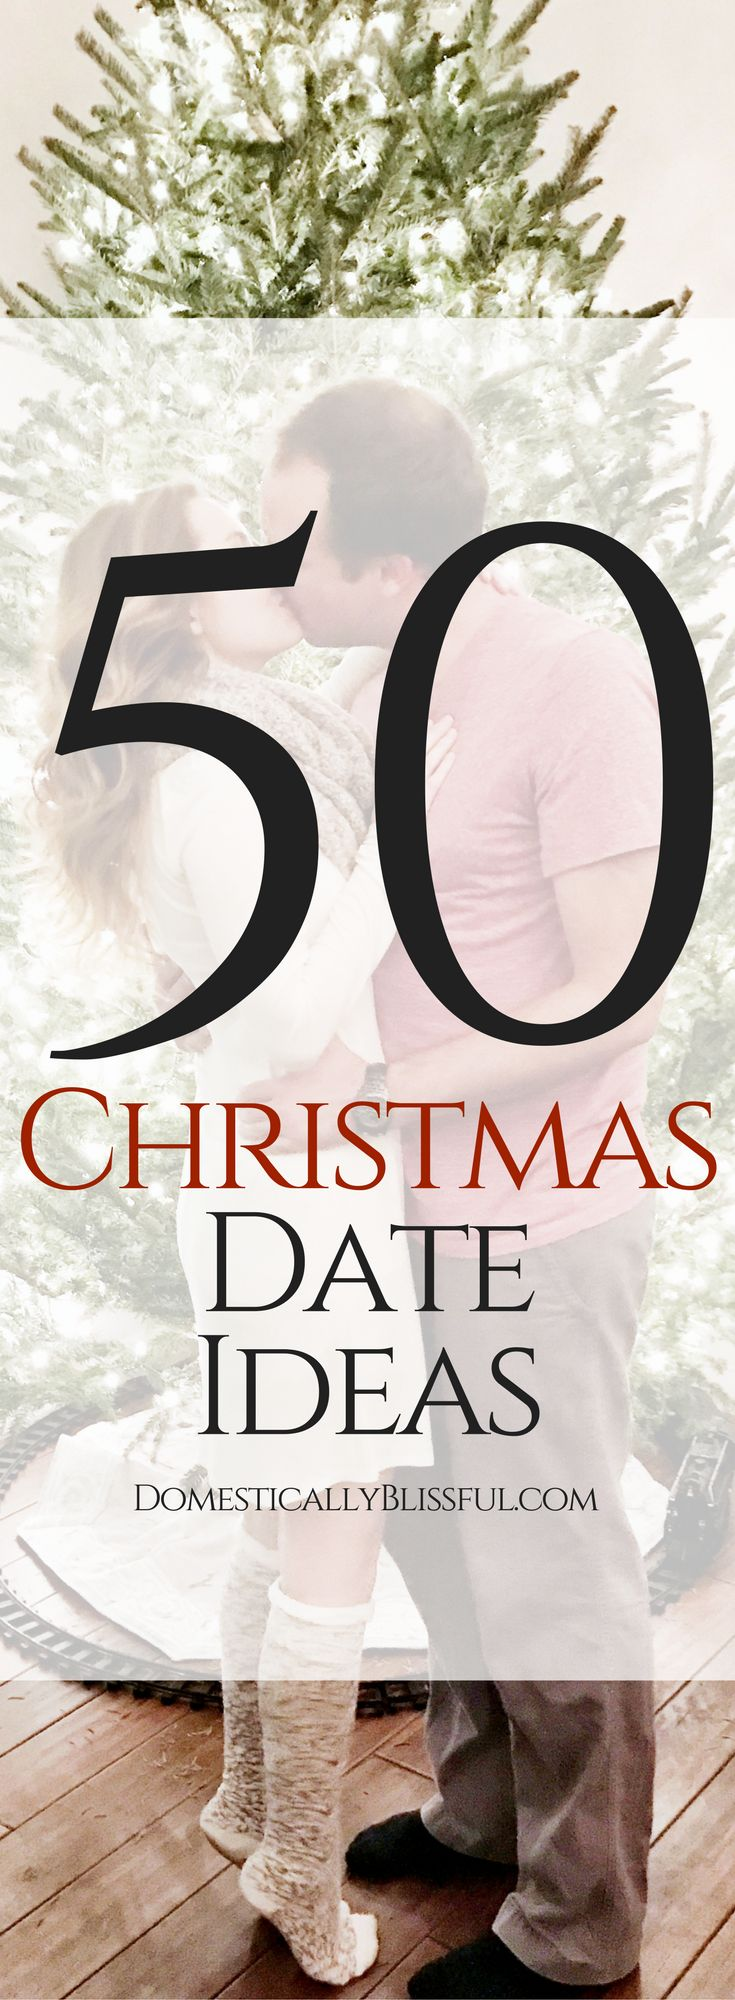 A fun & romantic collection of Christmas date ideas for your holiday season!